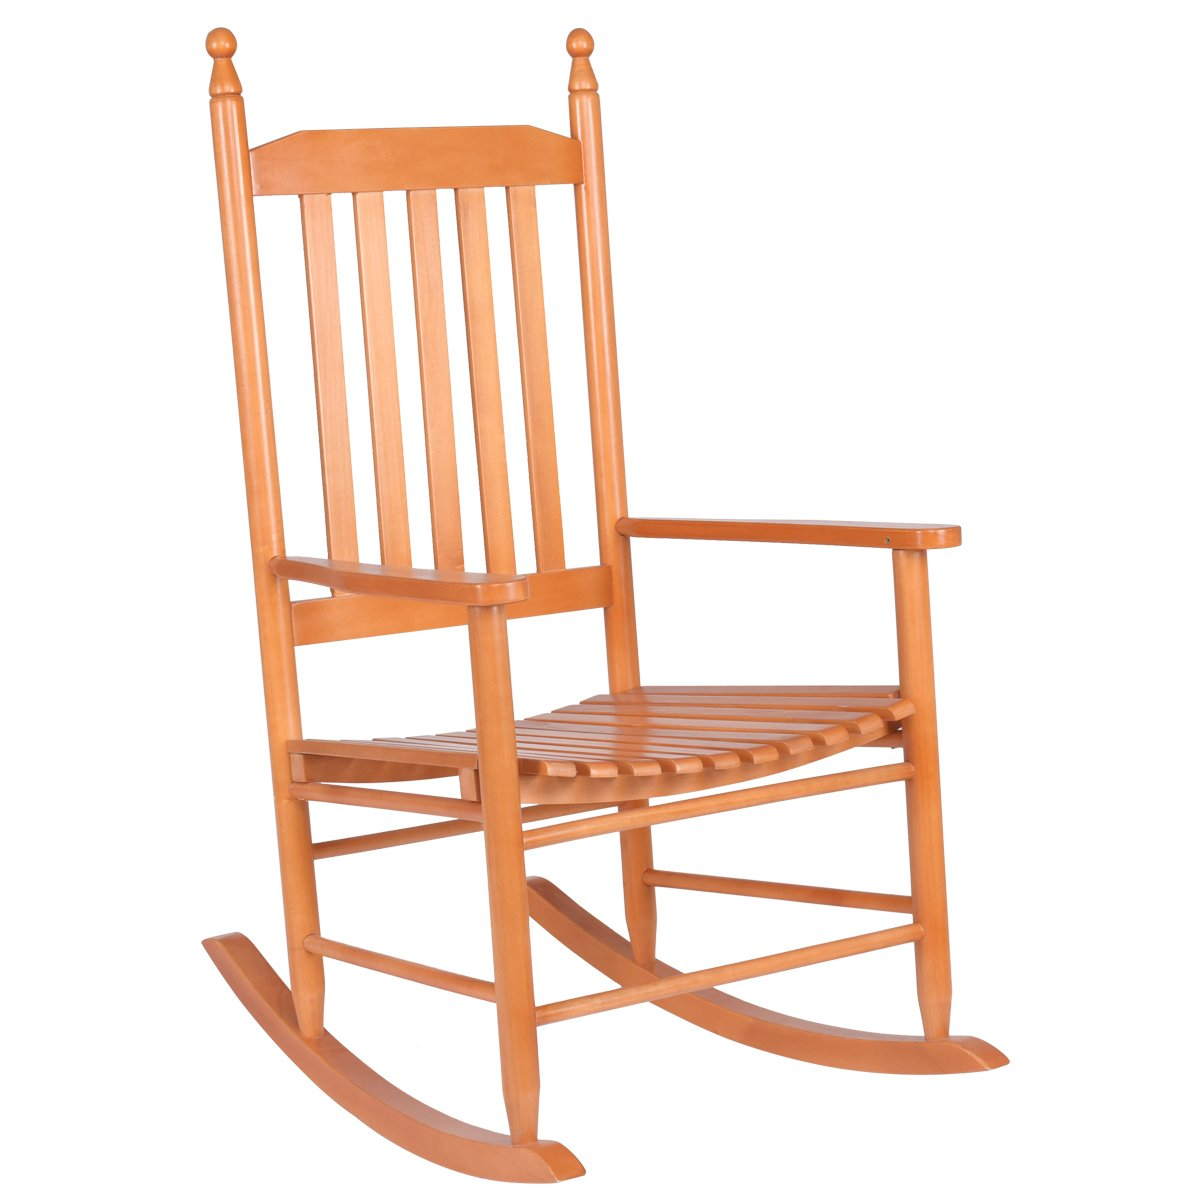 Giantex Wood Outdoor Rocking Chair, Wooden Rocking Chairs for Porch, Patio, Living Room, Porch Rocker for Adults (Walnut) by Giantex